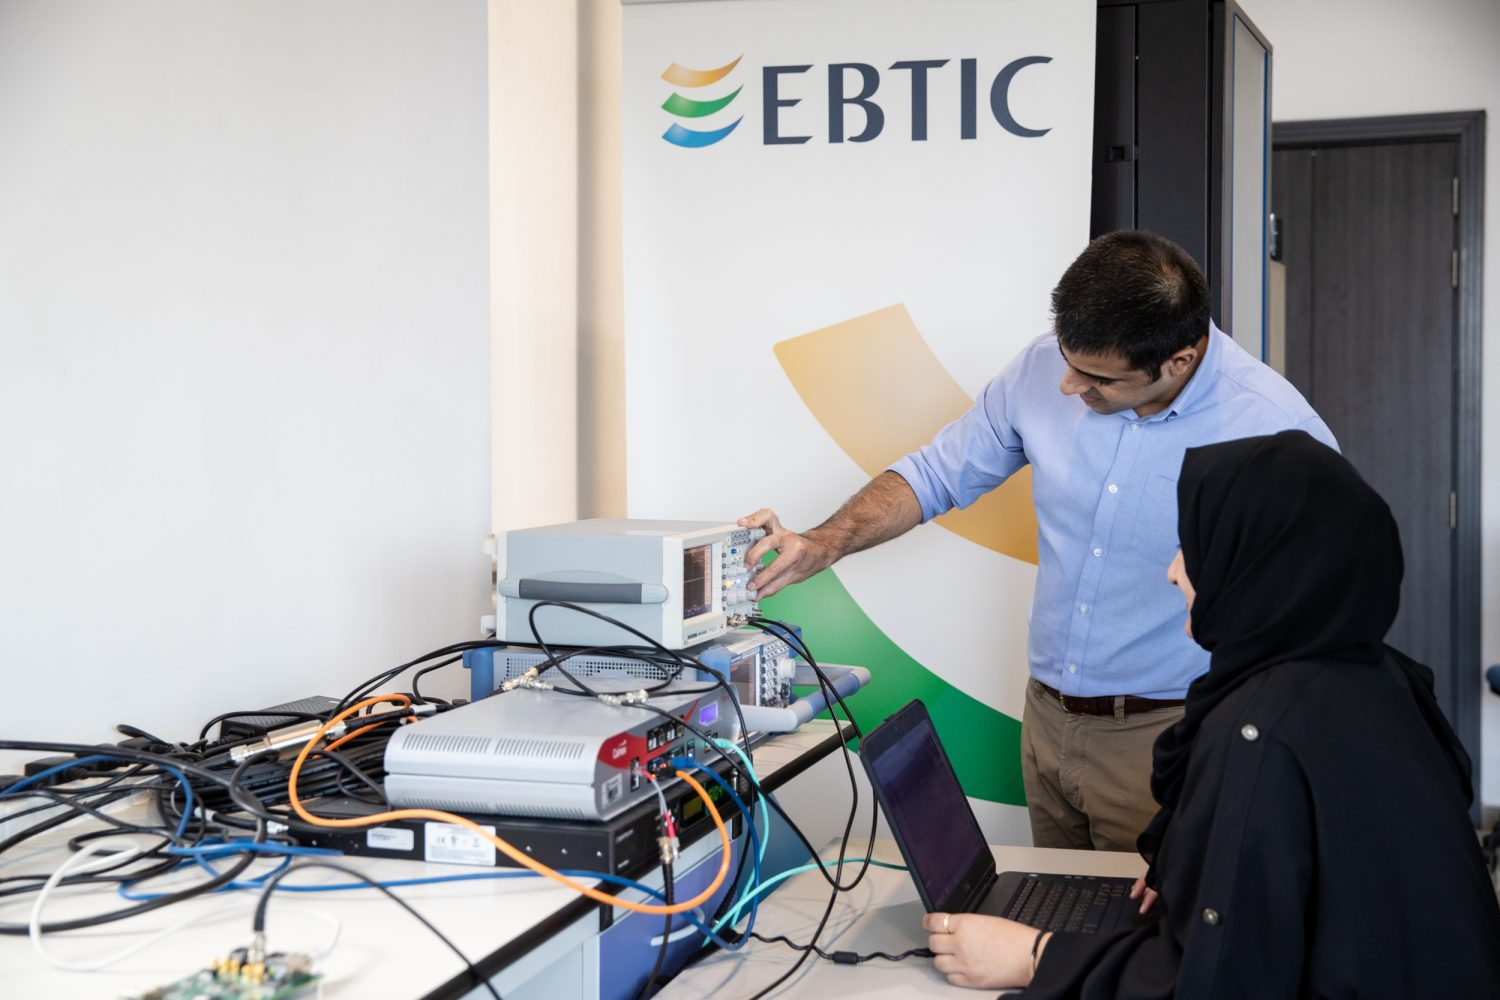 Emirates Ict Innovation Center (EBTIC)